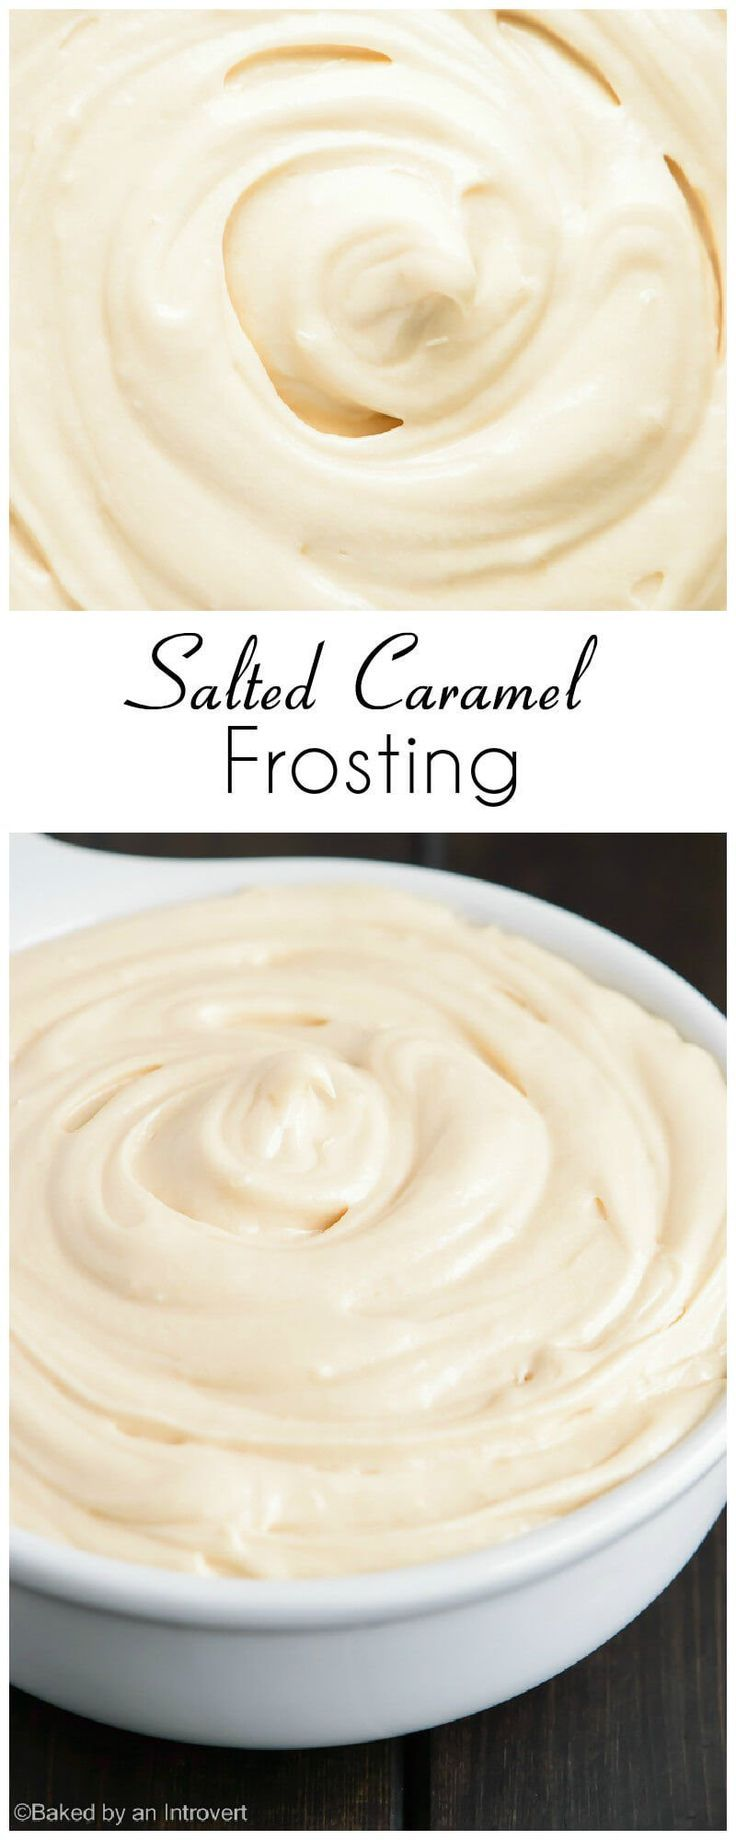 Creamy salted caramel frosting that pairs great with chocolate or vanilla cakes.